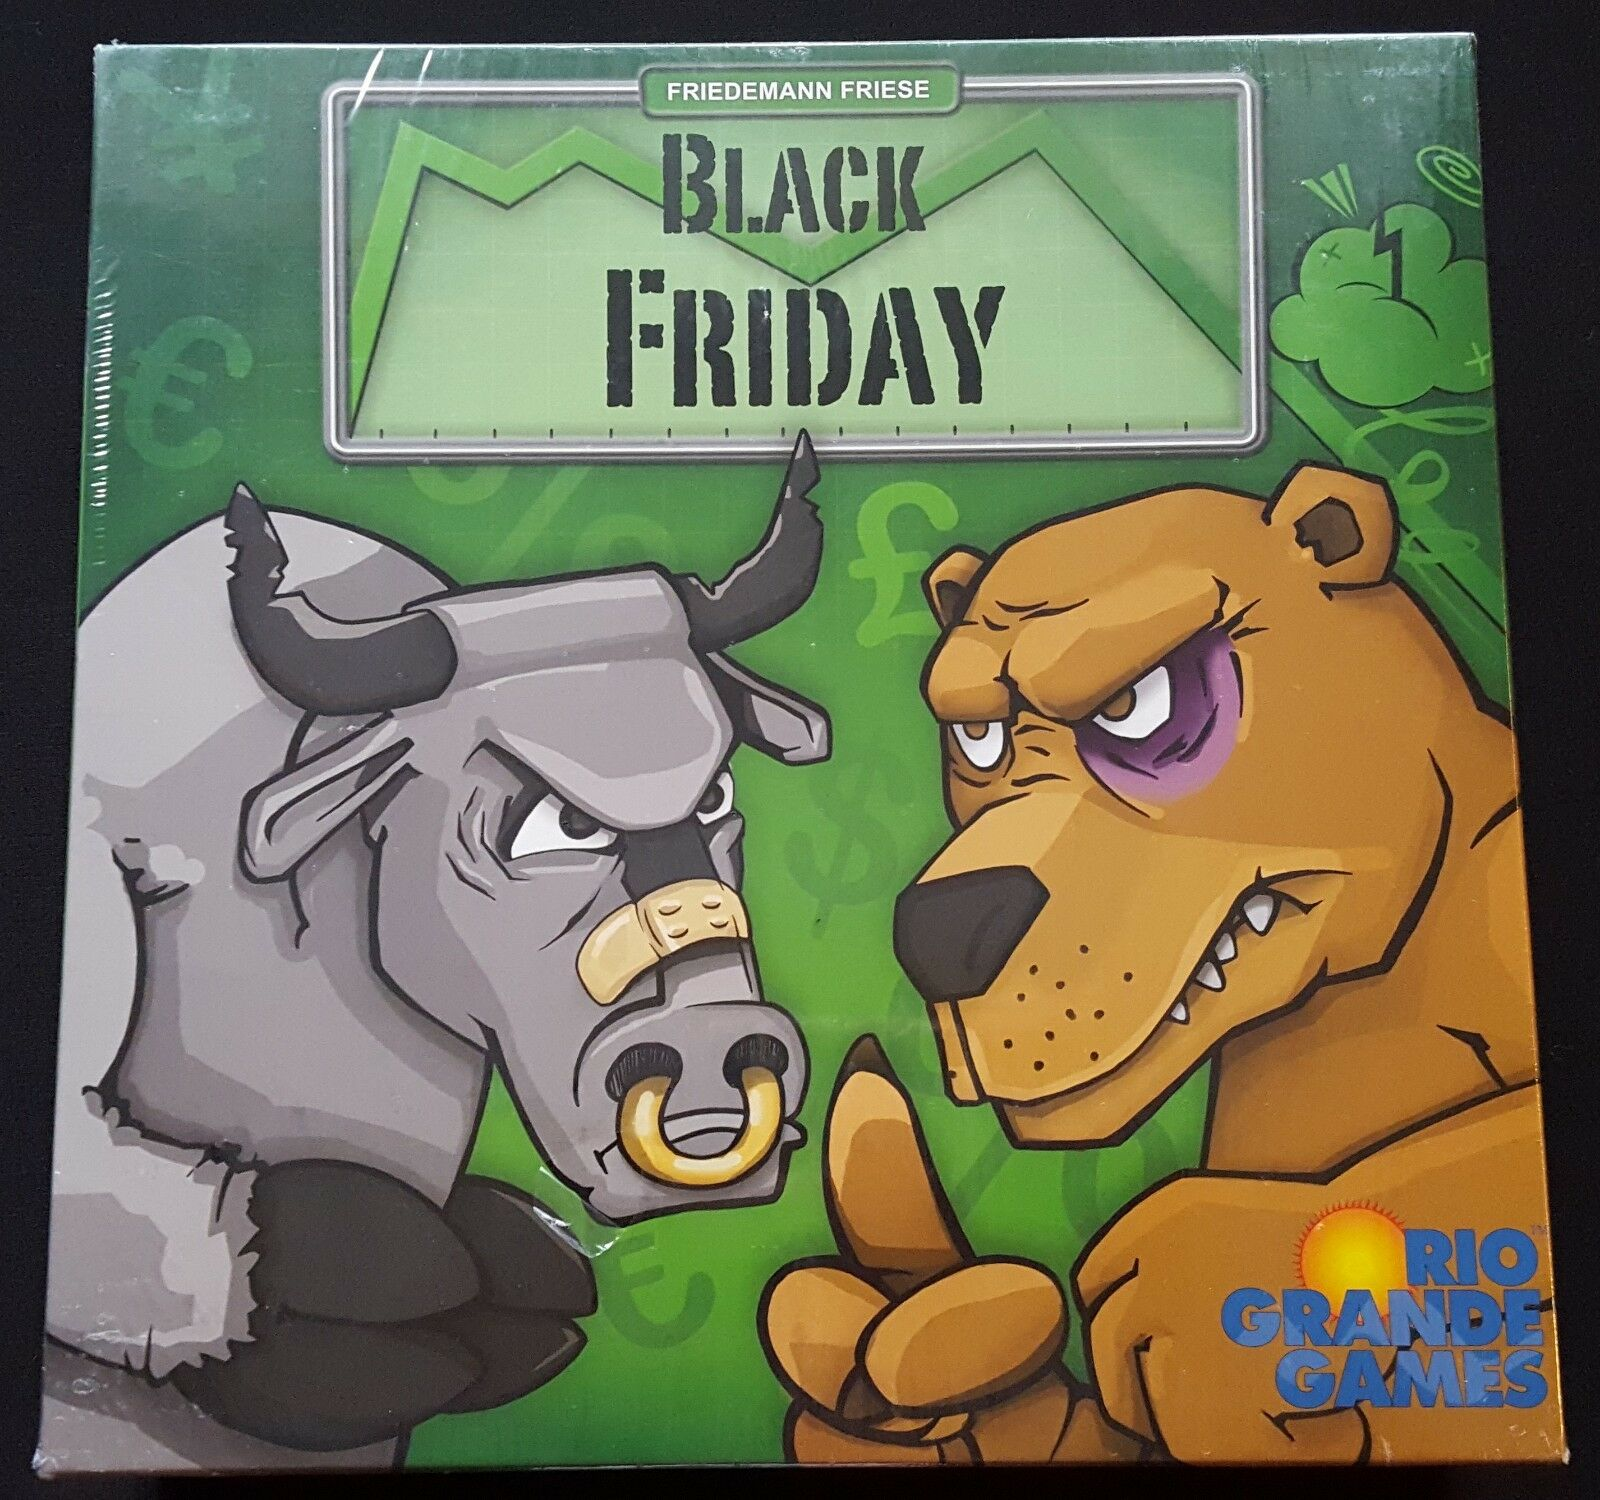 schwarz FRIDAY Vintage Board Game By KOSMOS From 2010 Made In Germany - NEW